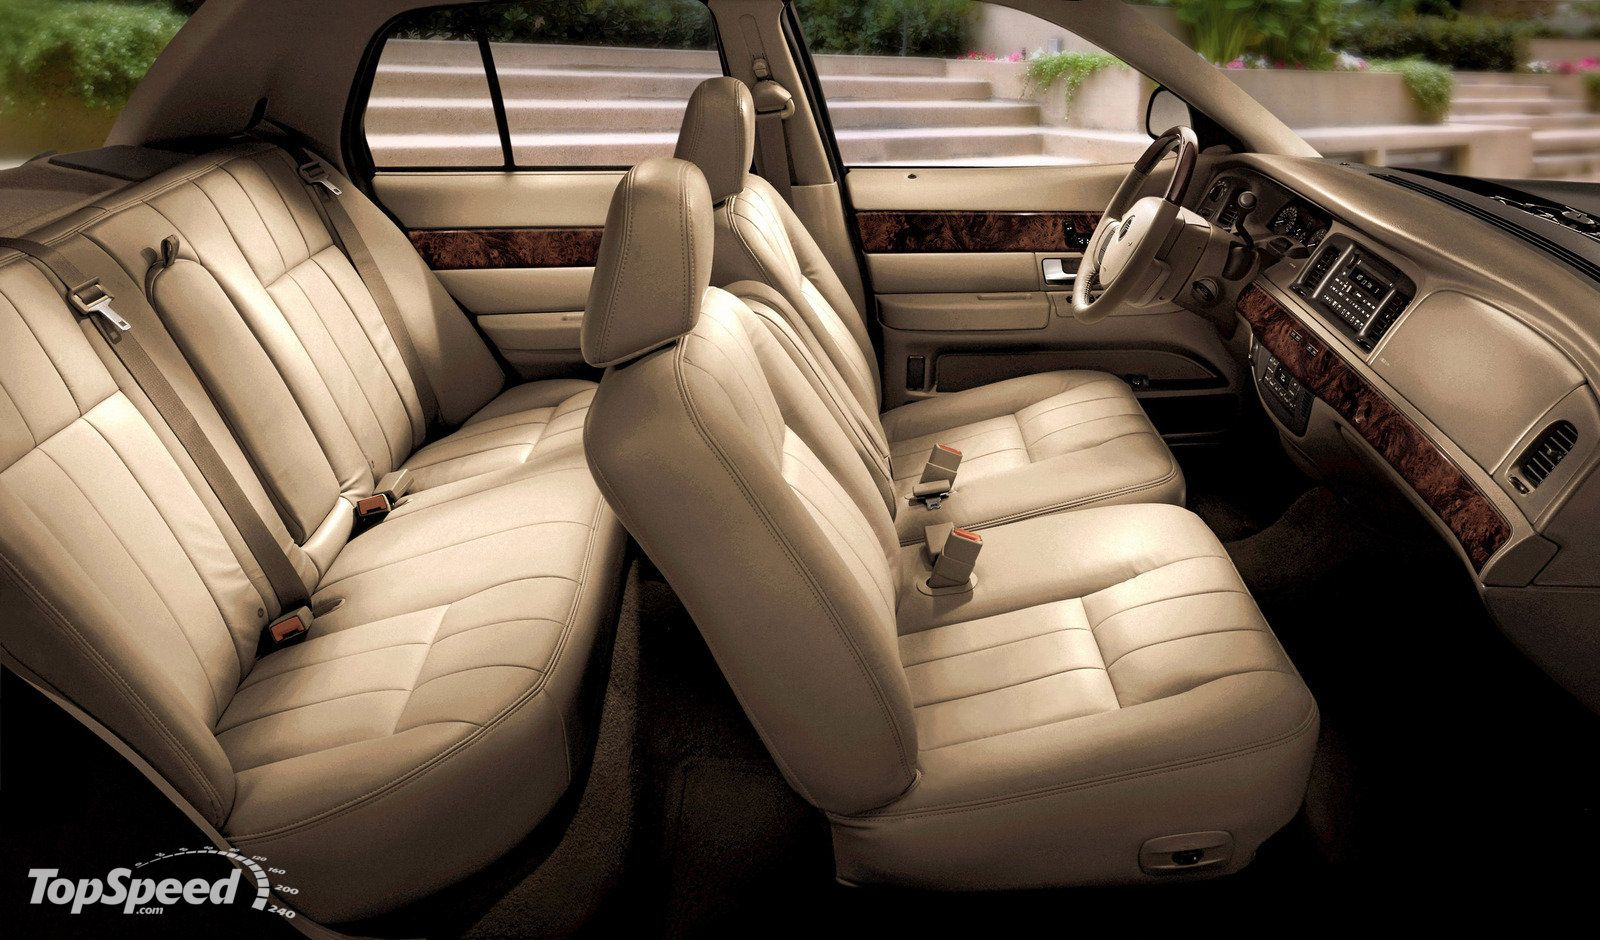 Astonishing 2007 Mercury Grand Marquis Luxury Interior Leather Uwap Interior Chair Design Uwaporg